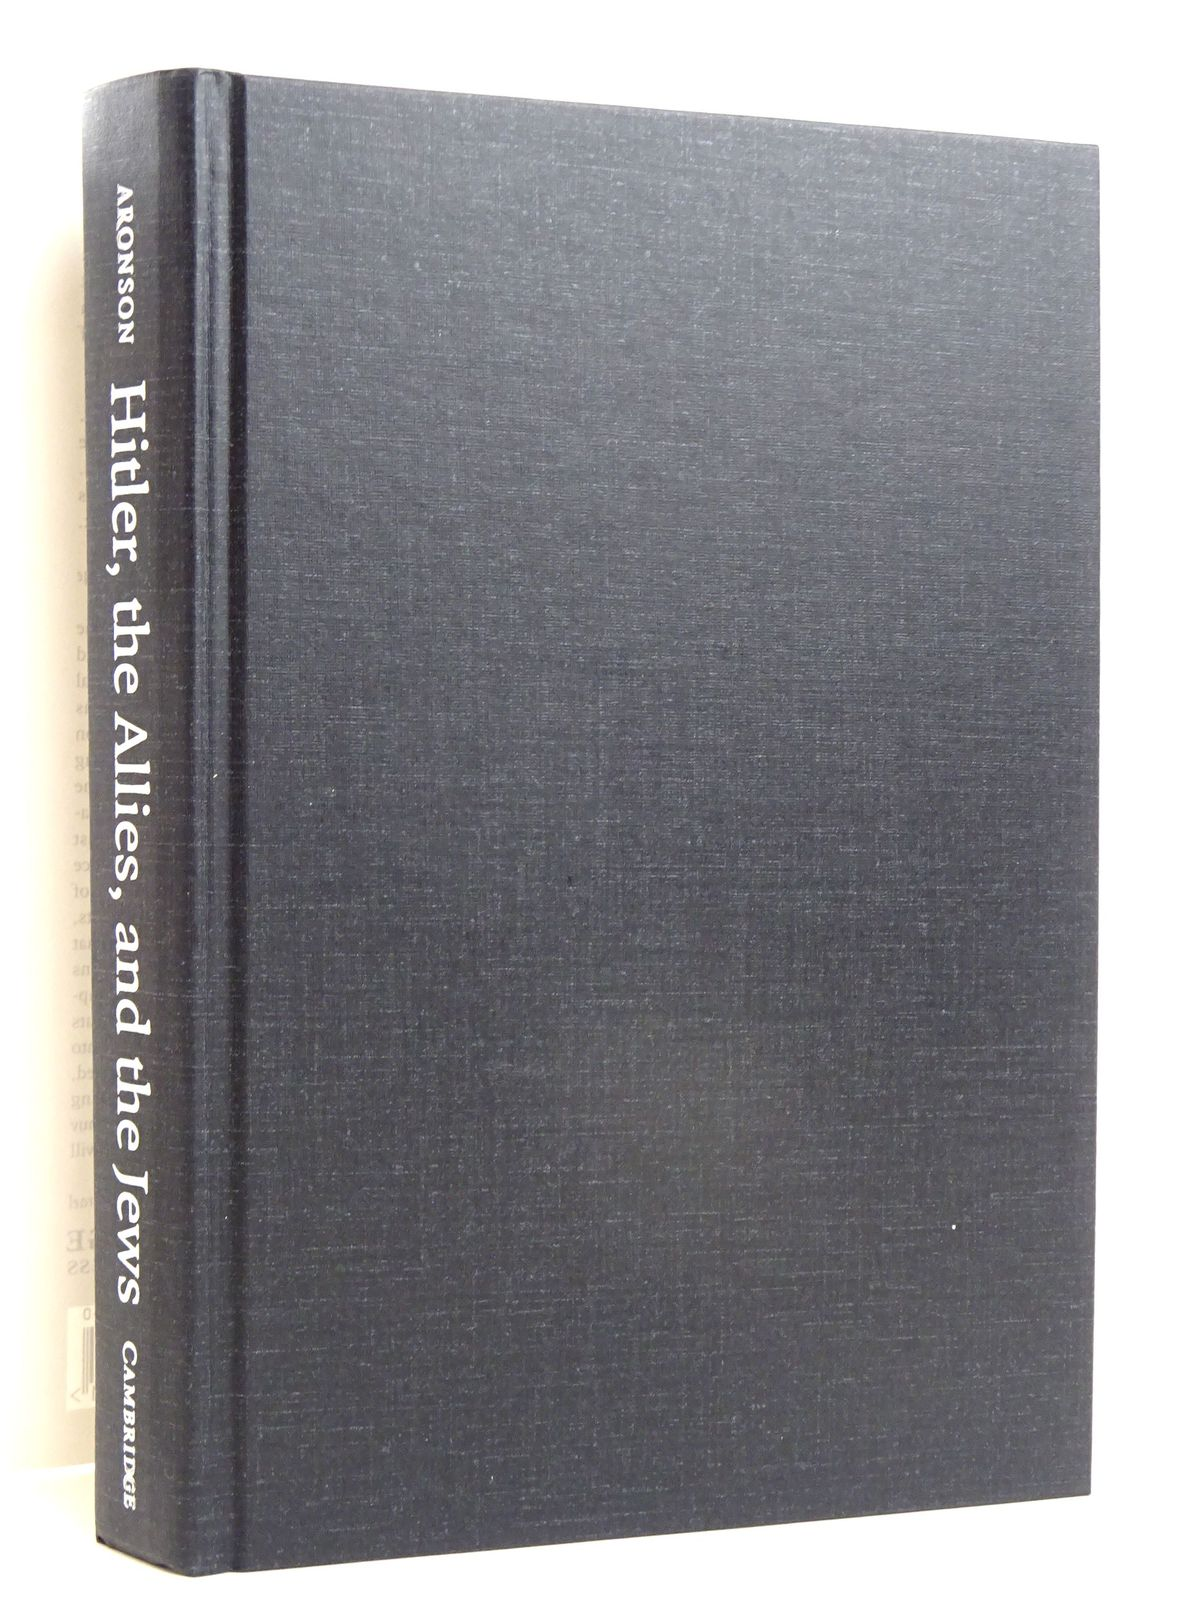 Photo of HITLER, THE ALLIES, AND THE JEWS written by Aronson, Shlomo published by Cambridge University Press (STOCK CODE: 1818599)  for sale by Stella & Rose's Books